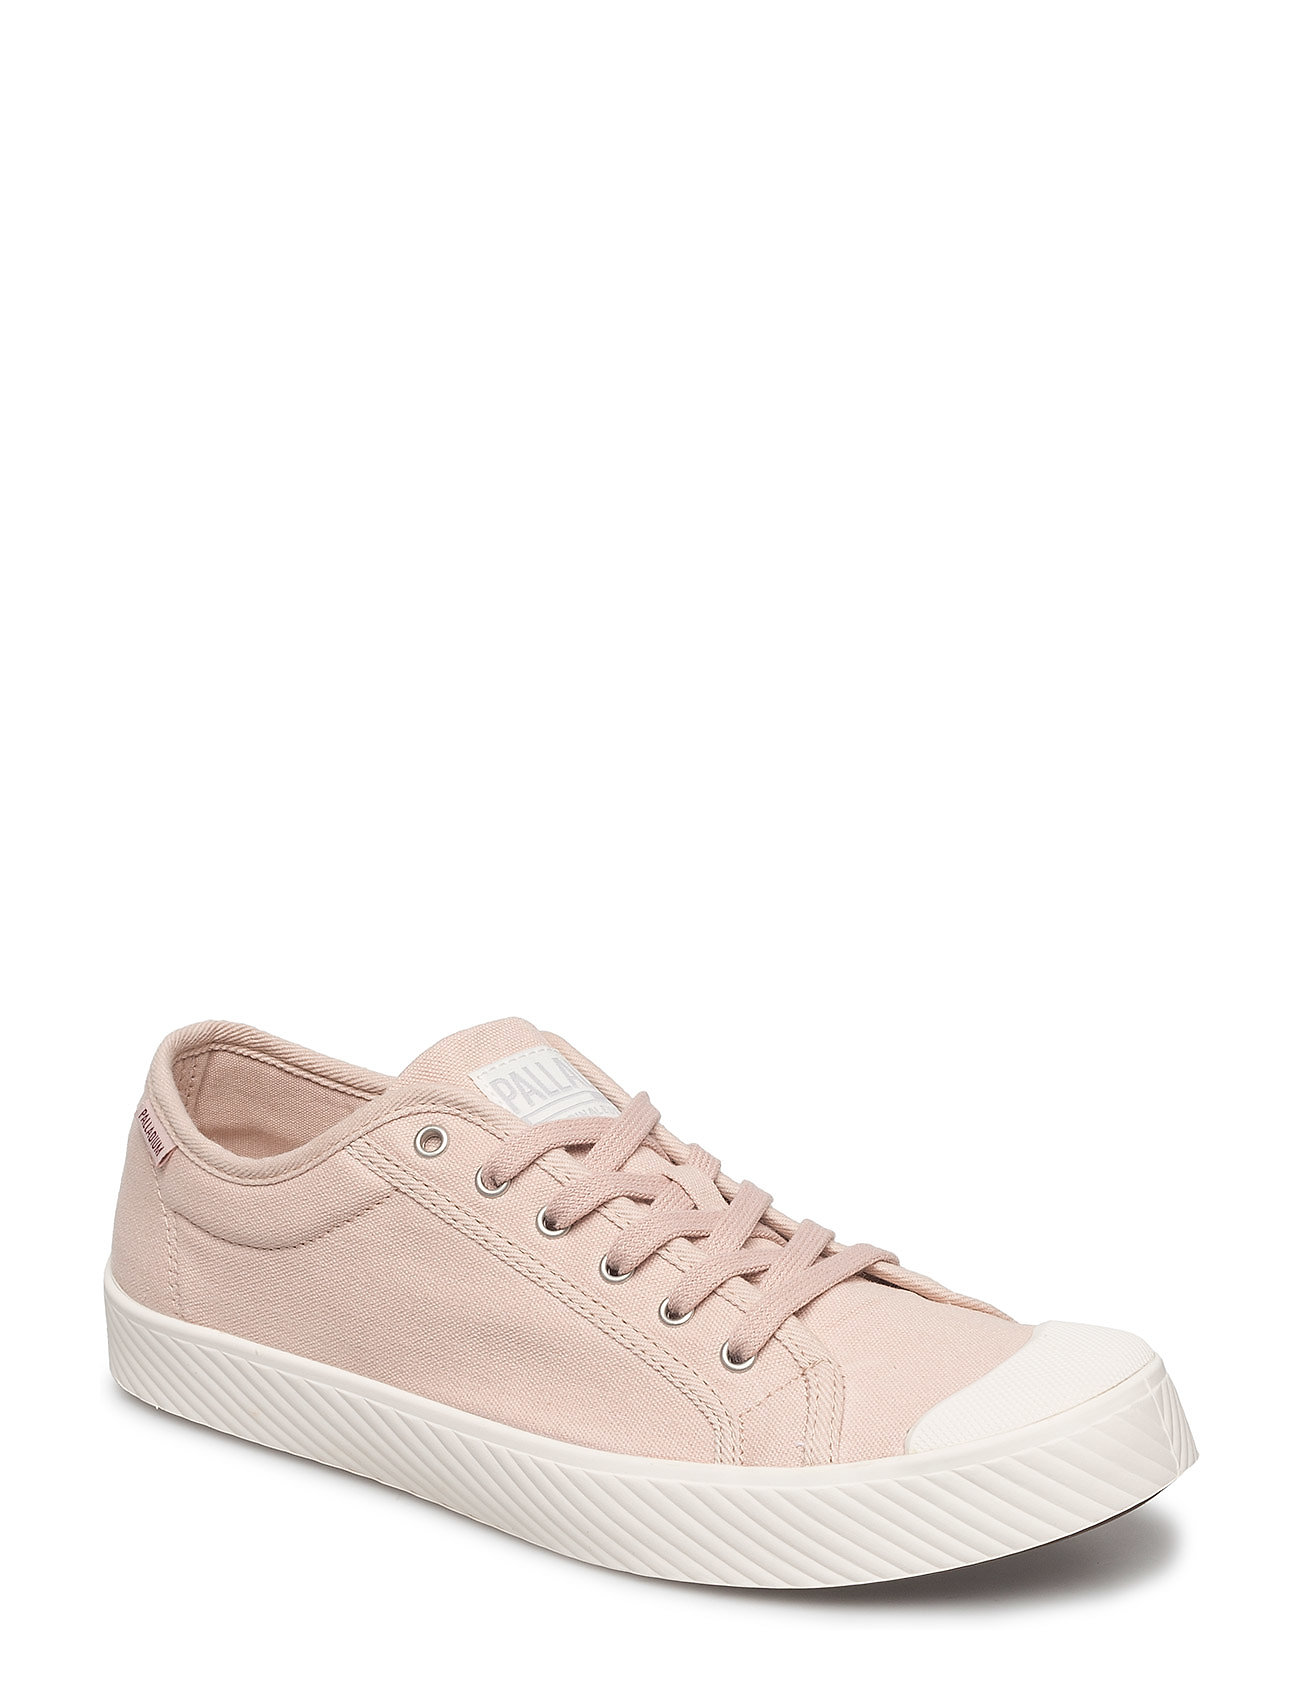 Palladium Pallaphoenix OG CVS - ROSE DUST